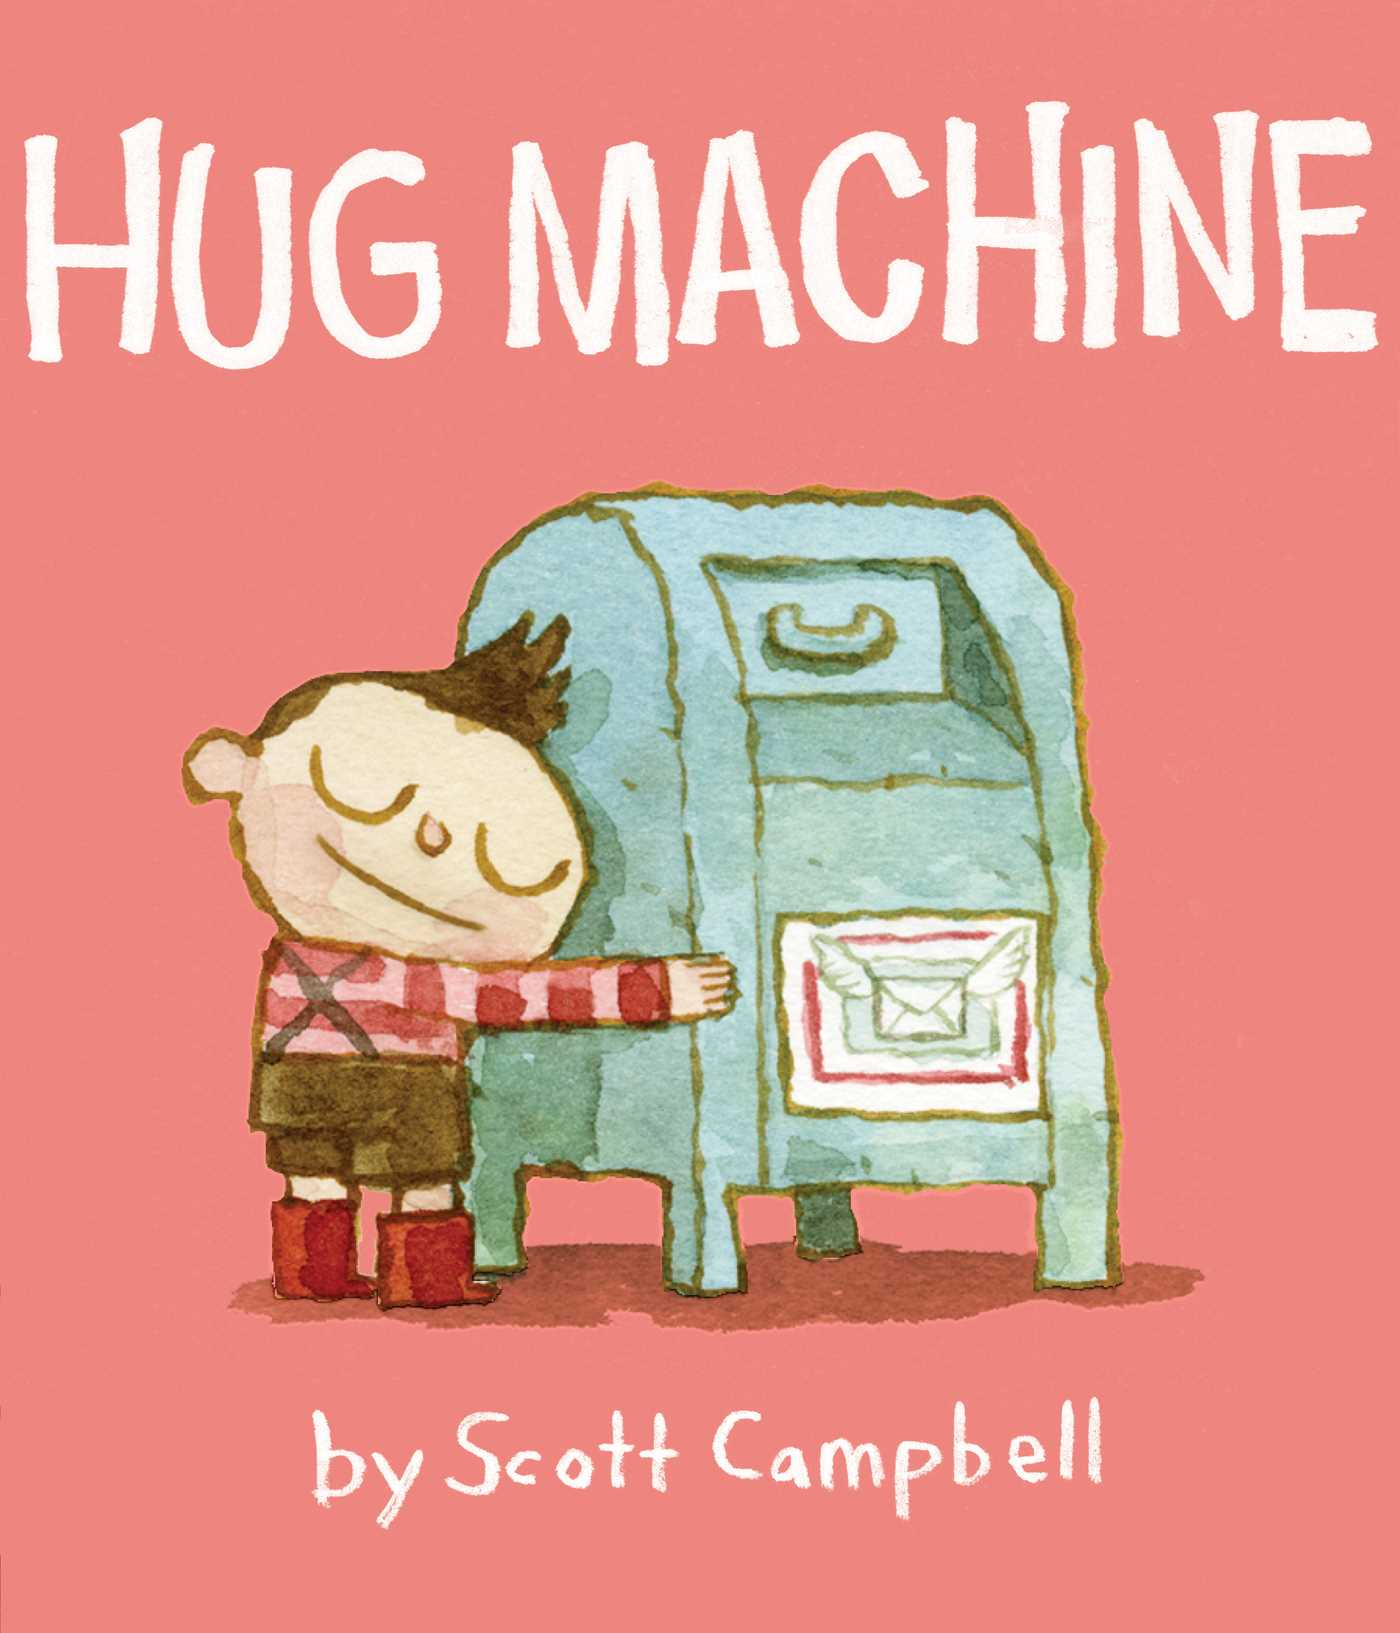 Hug machine 9781442459359 hr